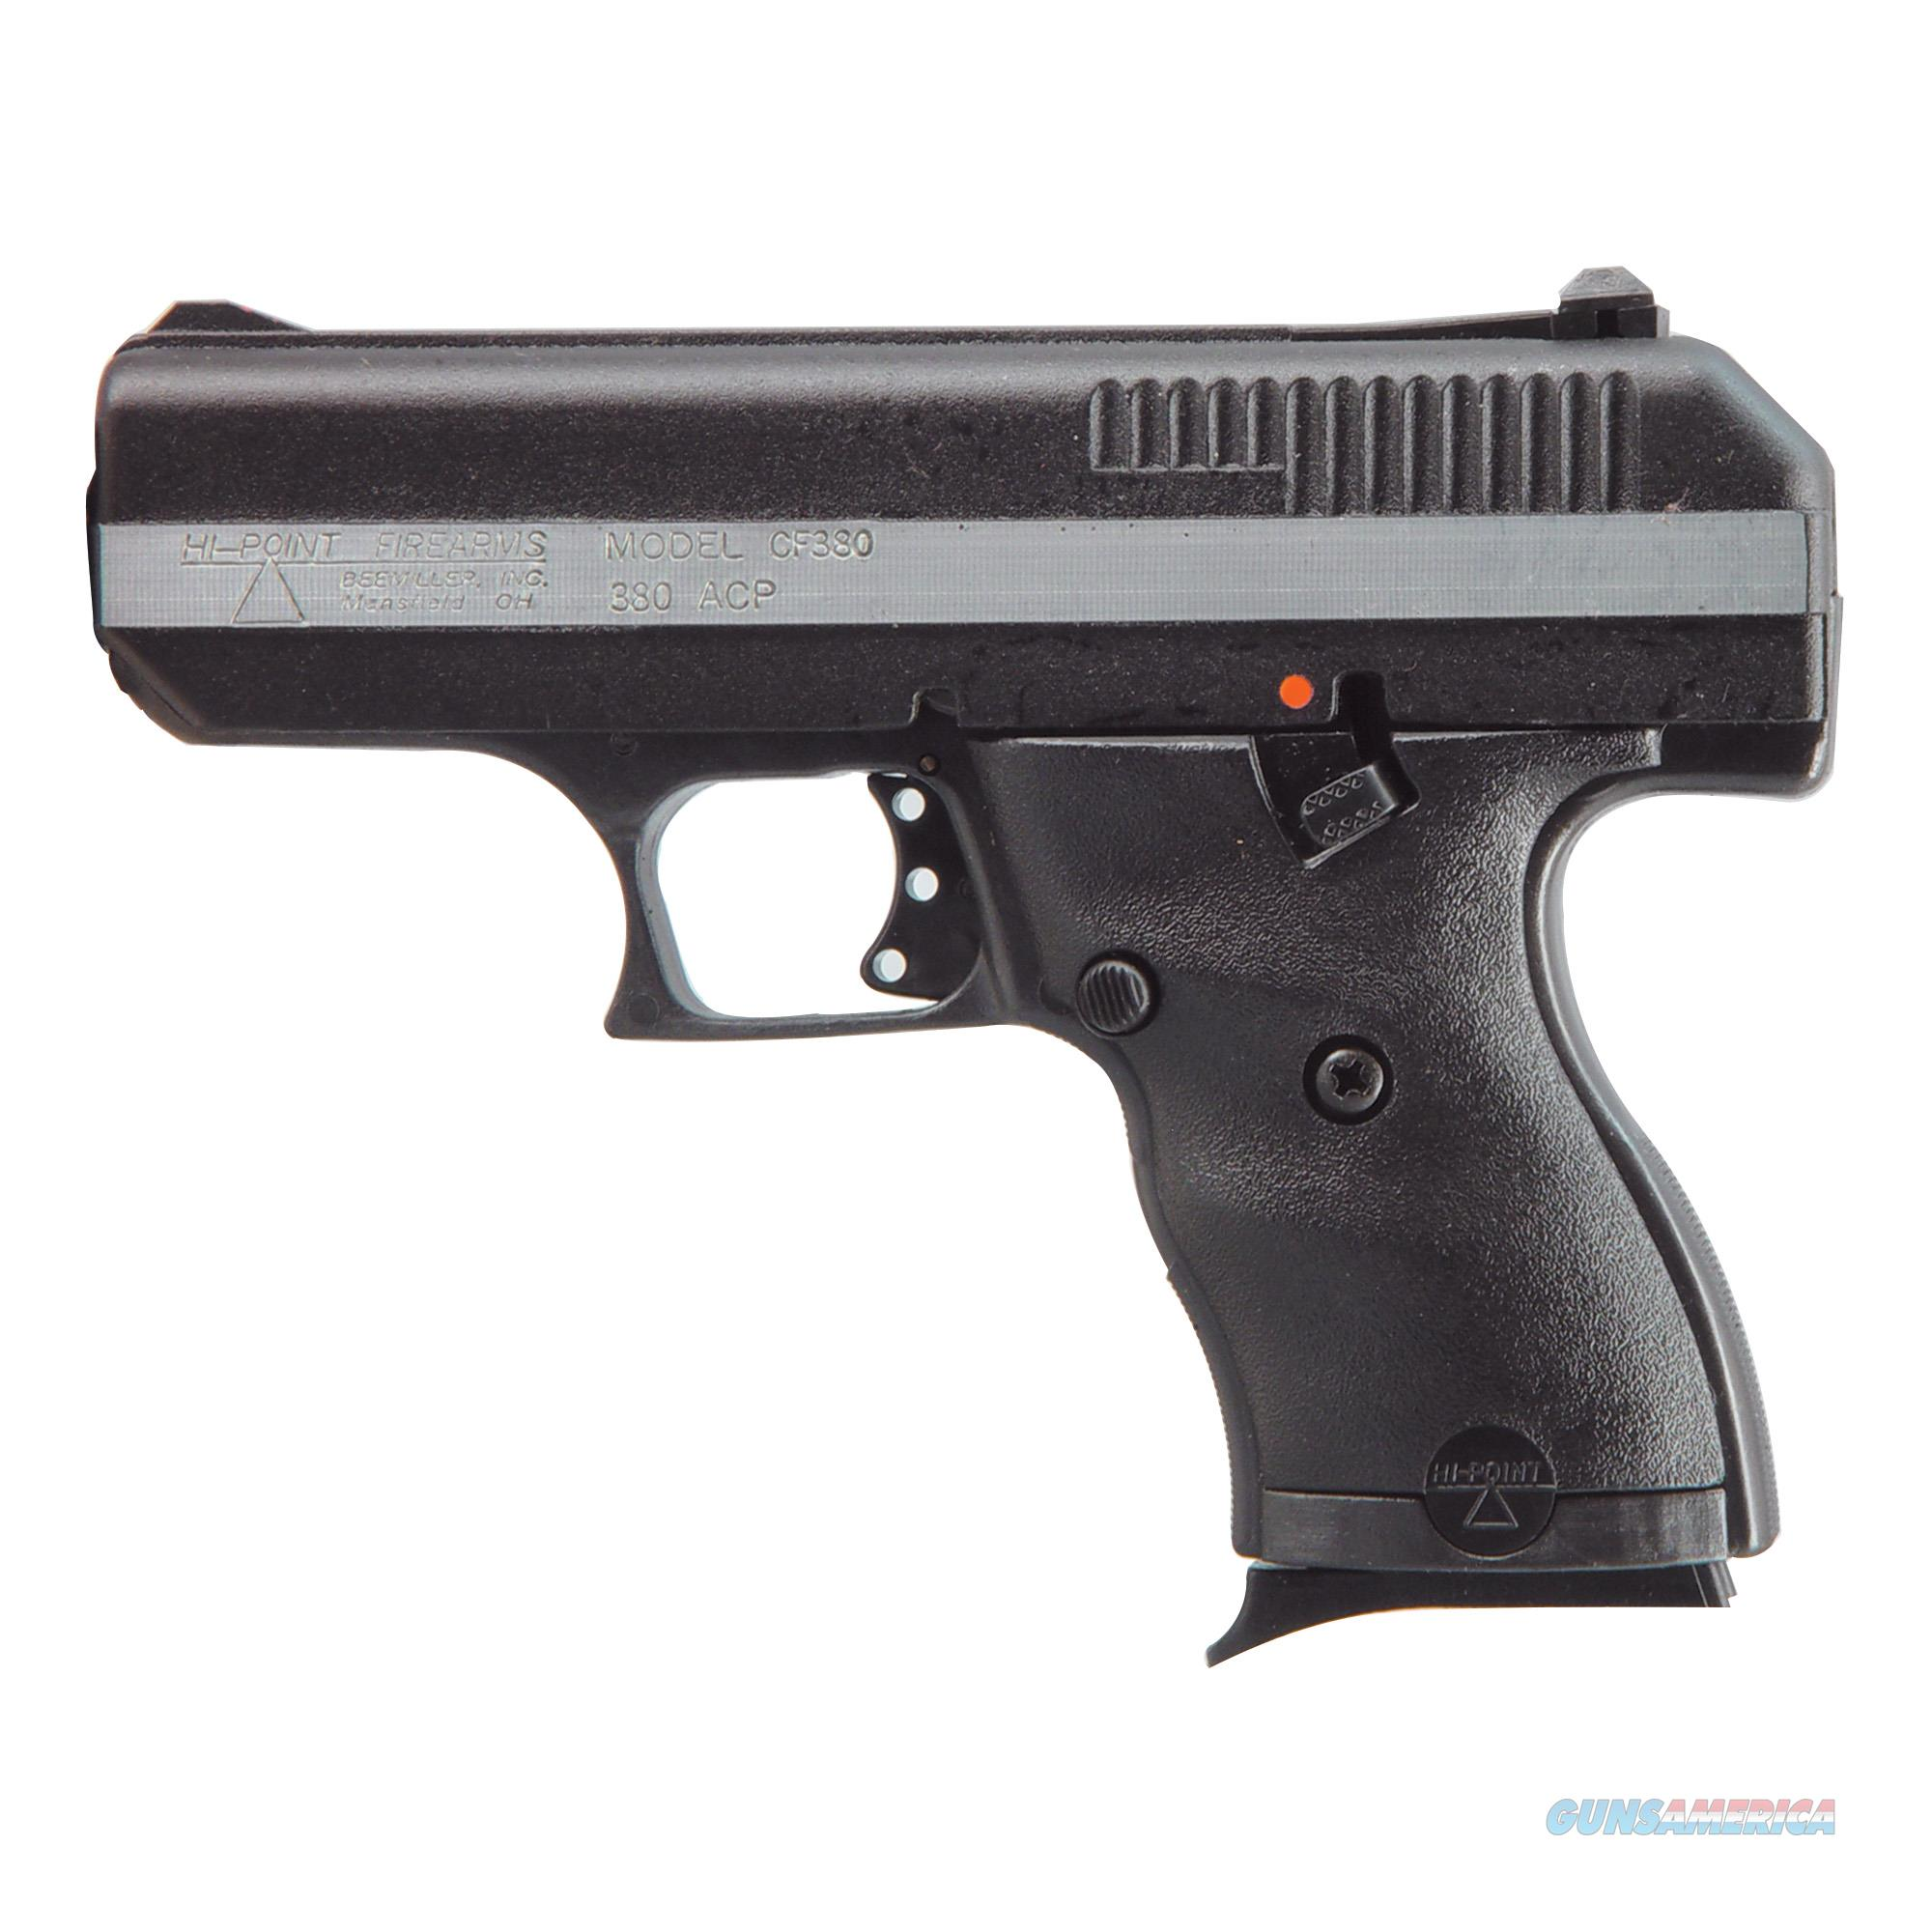 "Hi-Point CF380 .380 ACP 3.5"" 8+1 3-Dot Sights - New in Box!  Guns > Pistols > Hi Point Pistols"